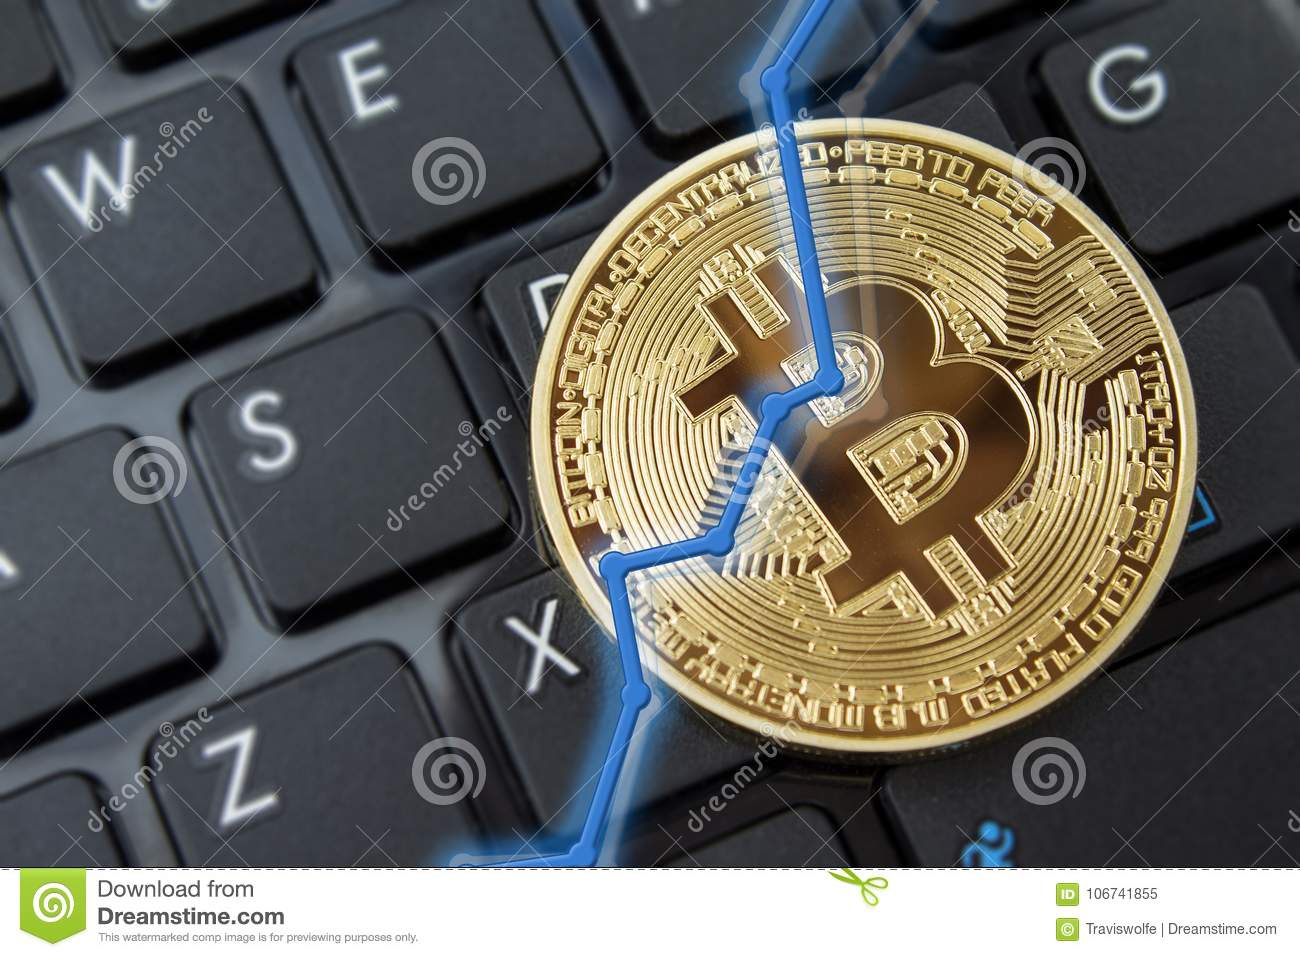 Bitcoin currency and dollar btc market symbol cryptocurrency r btc market symbol cryptocurrency r royalty free stock photo biocorpaavc Images